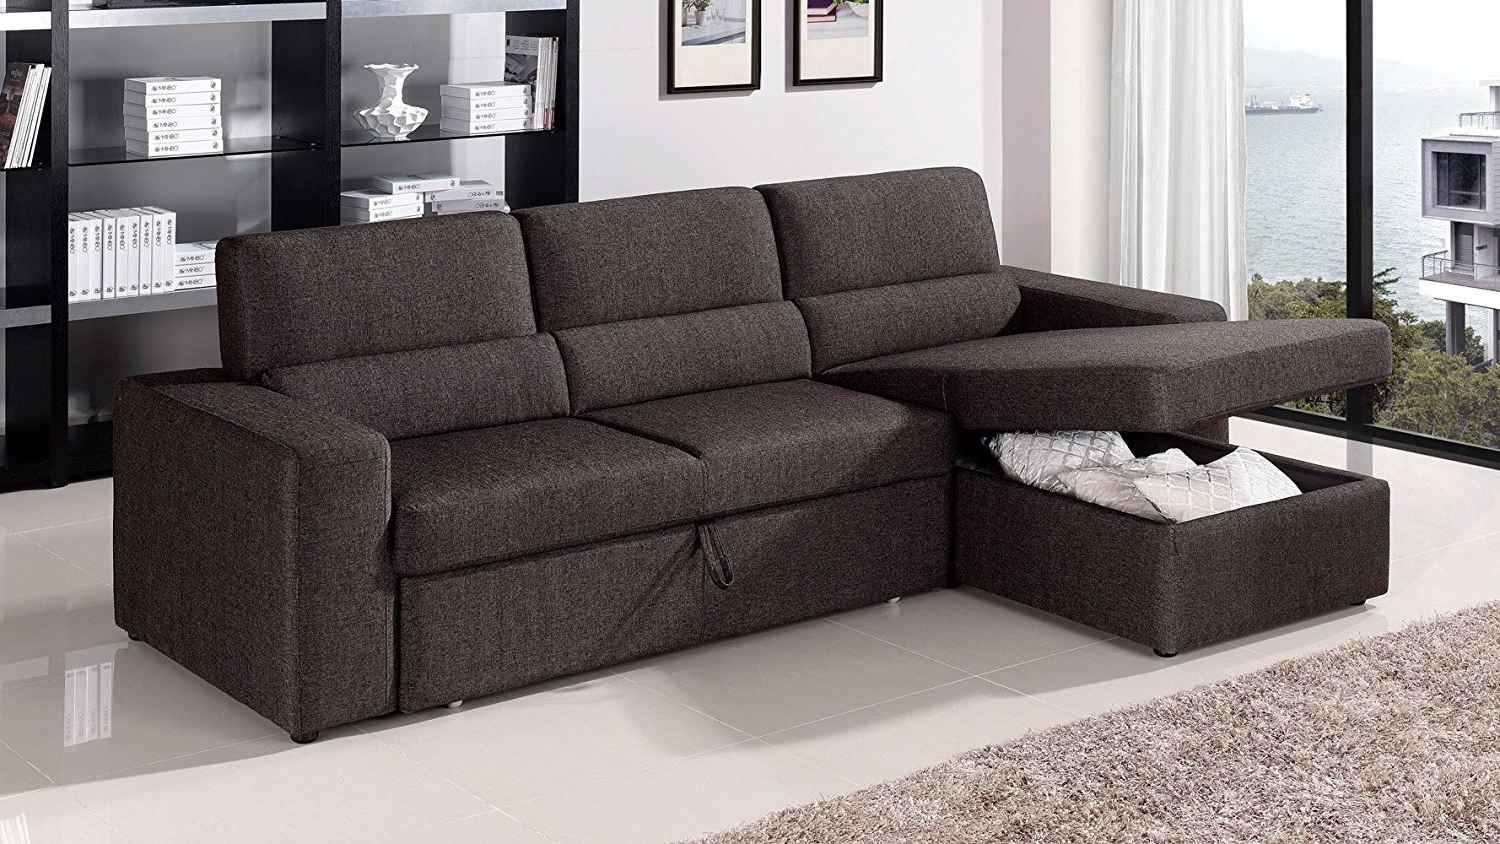 Sectional Sofas With Storage Throughout Recent Amazon: Black/brown Clubber Sleeper Sectional Sofa – Left (View 2 of 15)